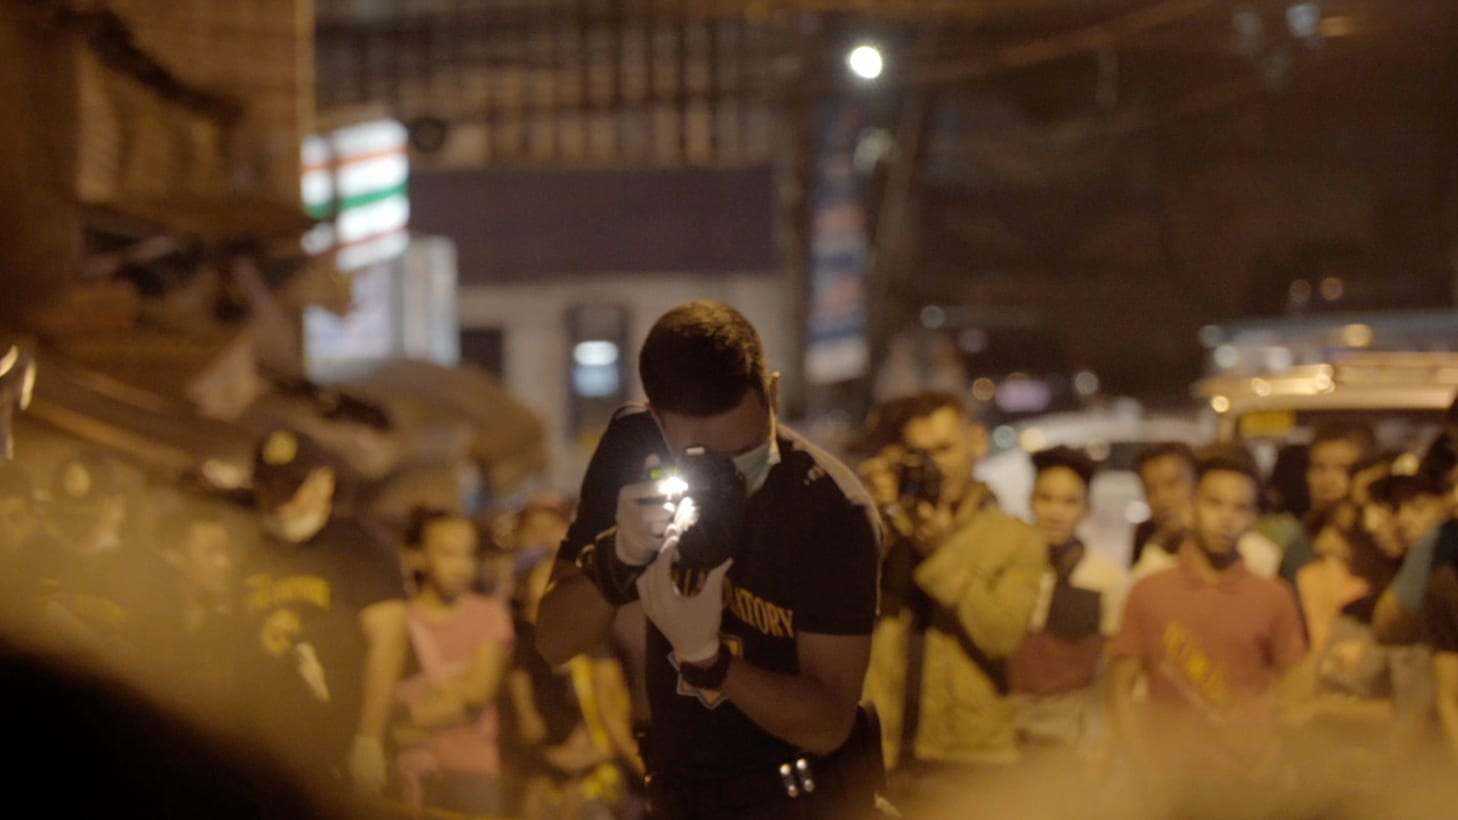 A Manila police officer takes a photo at a crime scene while a crowd watches in the background. (Genius Loki Film and Violet Films/Alexander A. Mora)